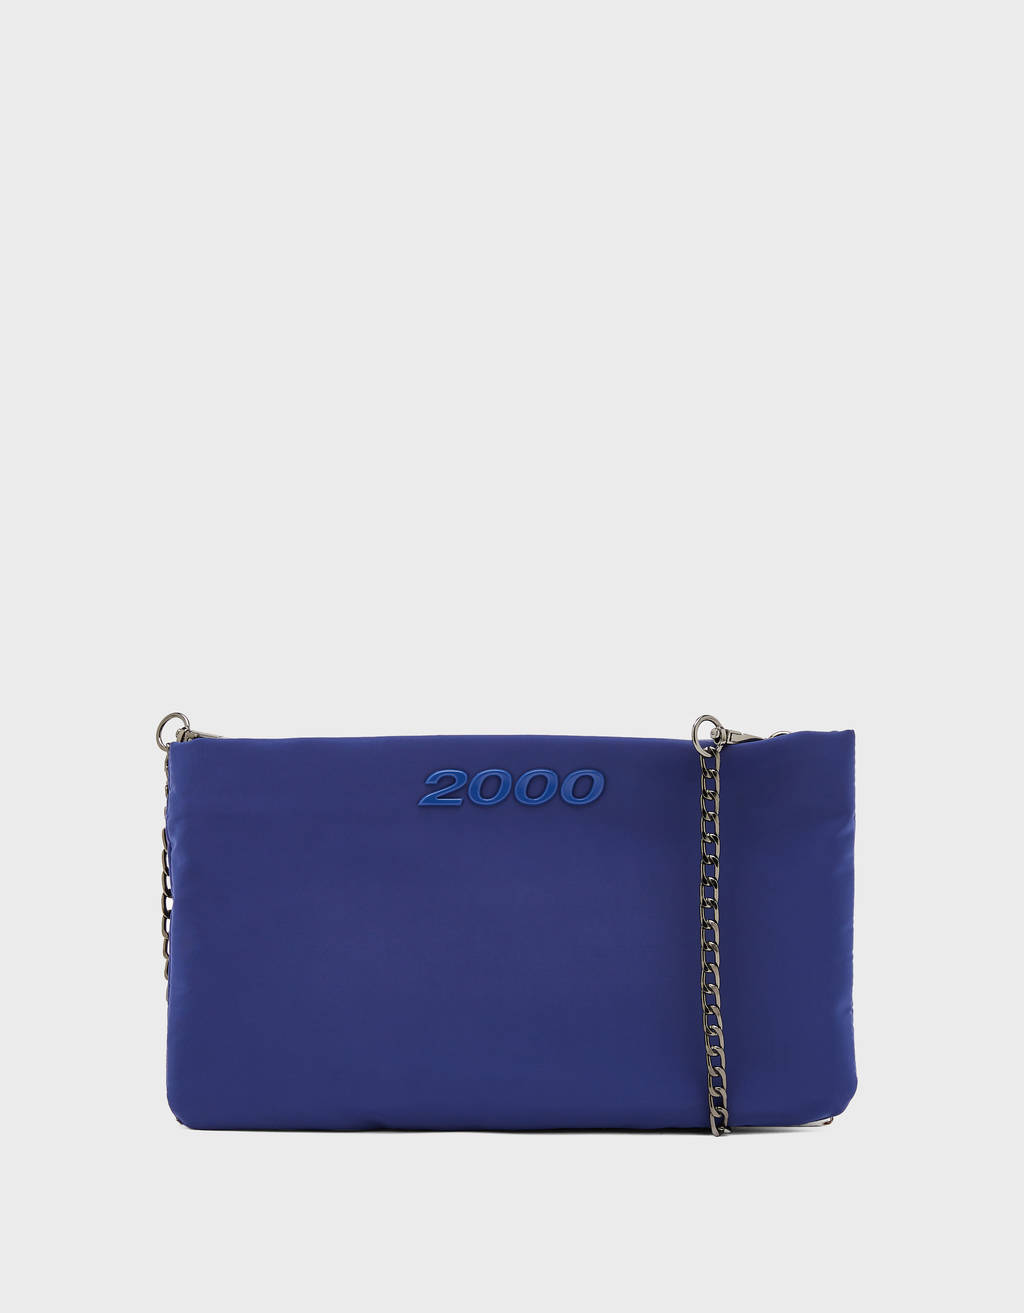 Borsa clutch in nylon